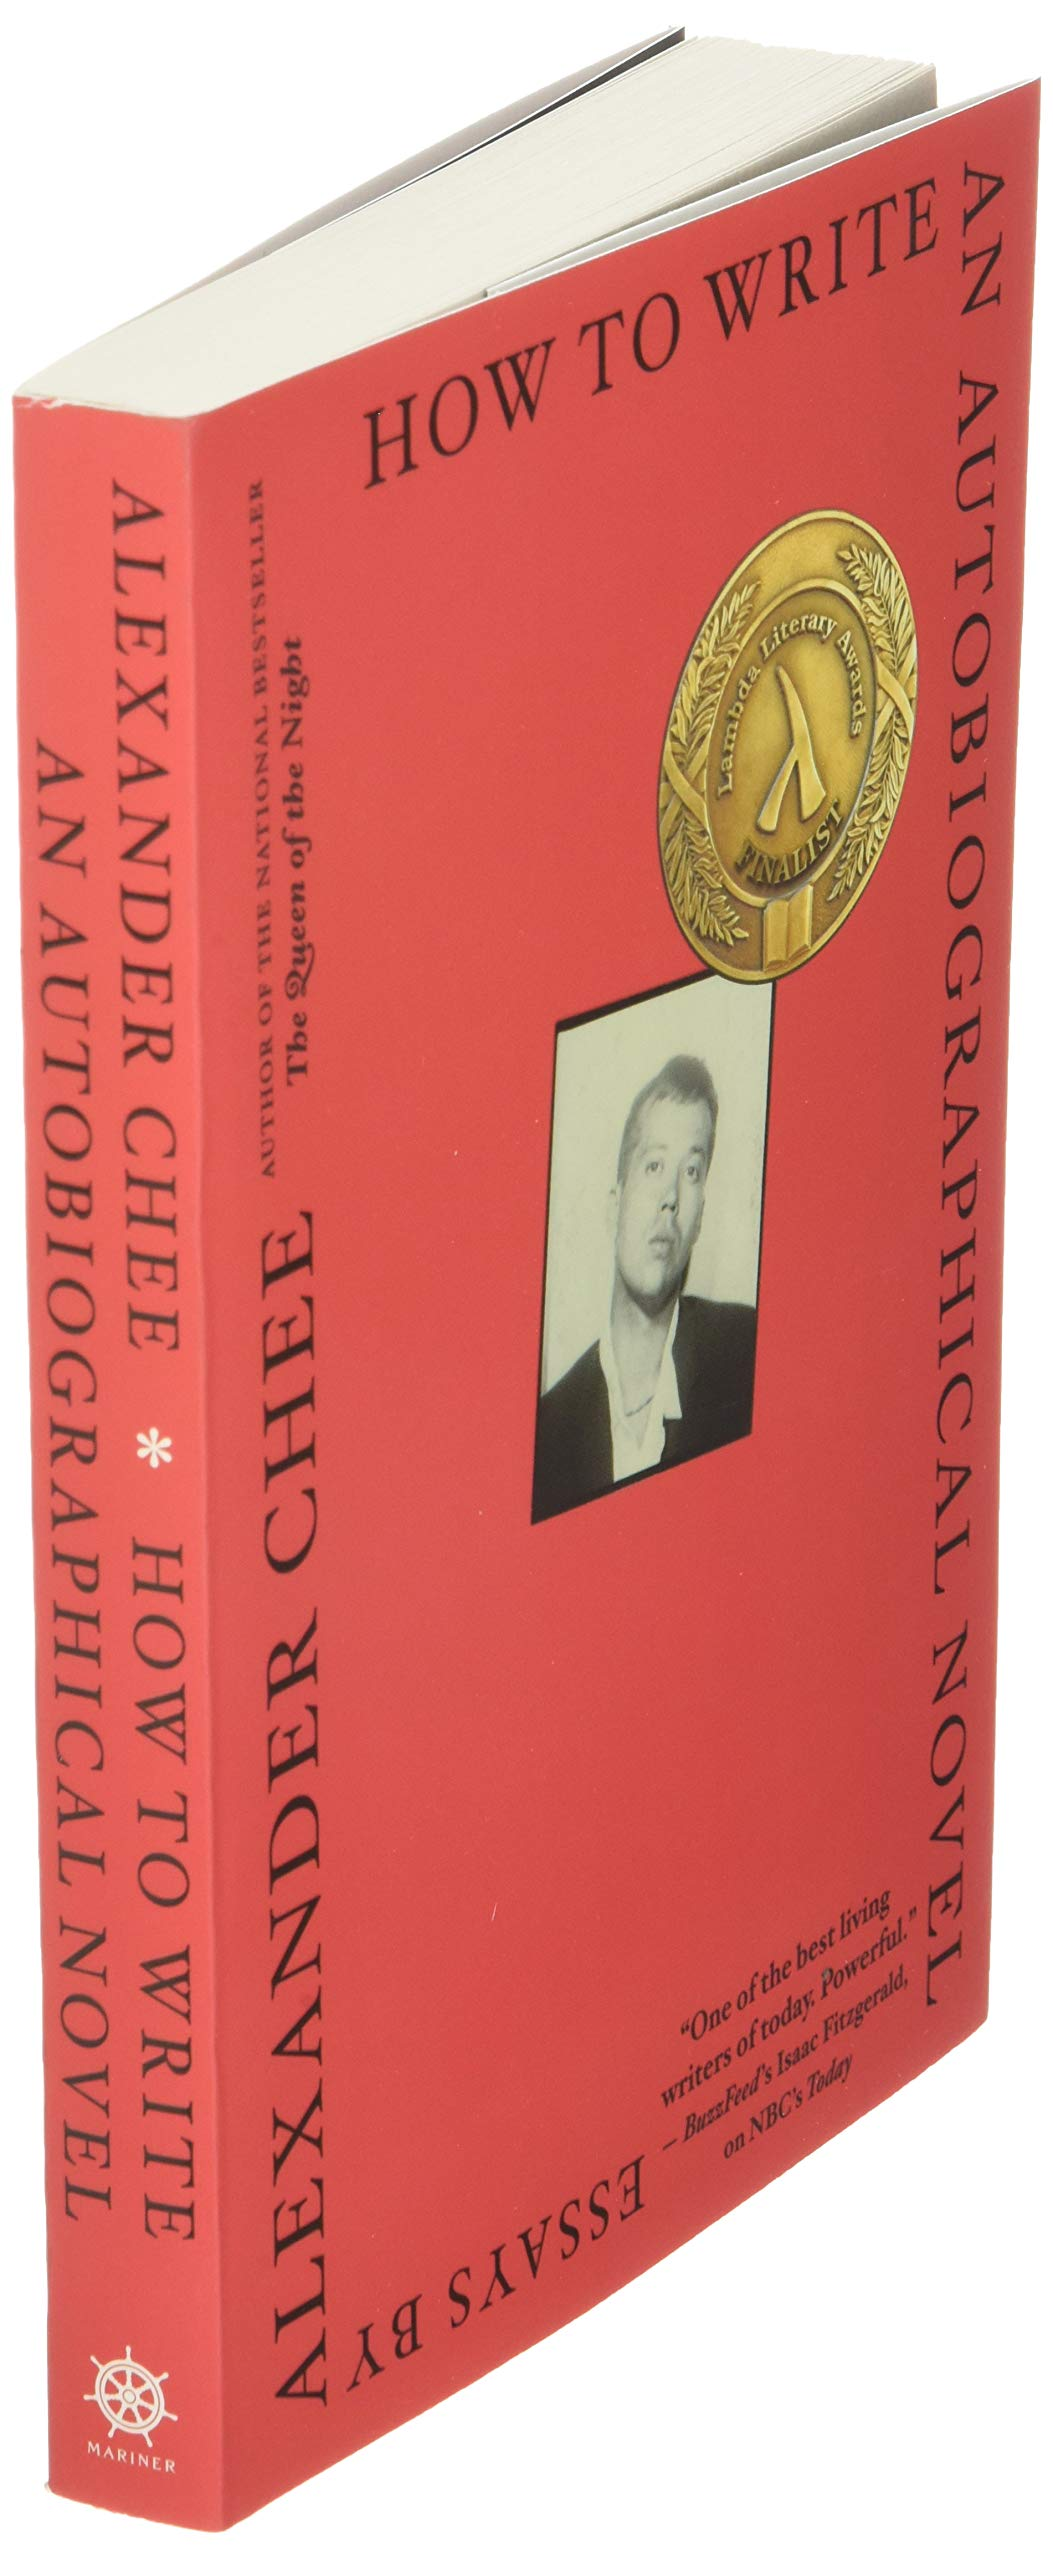 How to Write an Autobiographical Novel: Essays : Chee, Alexander